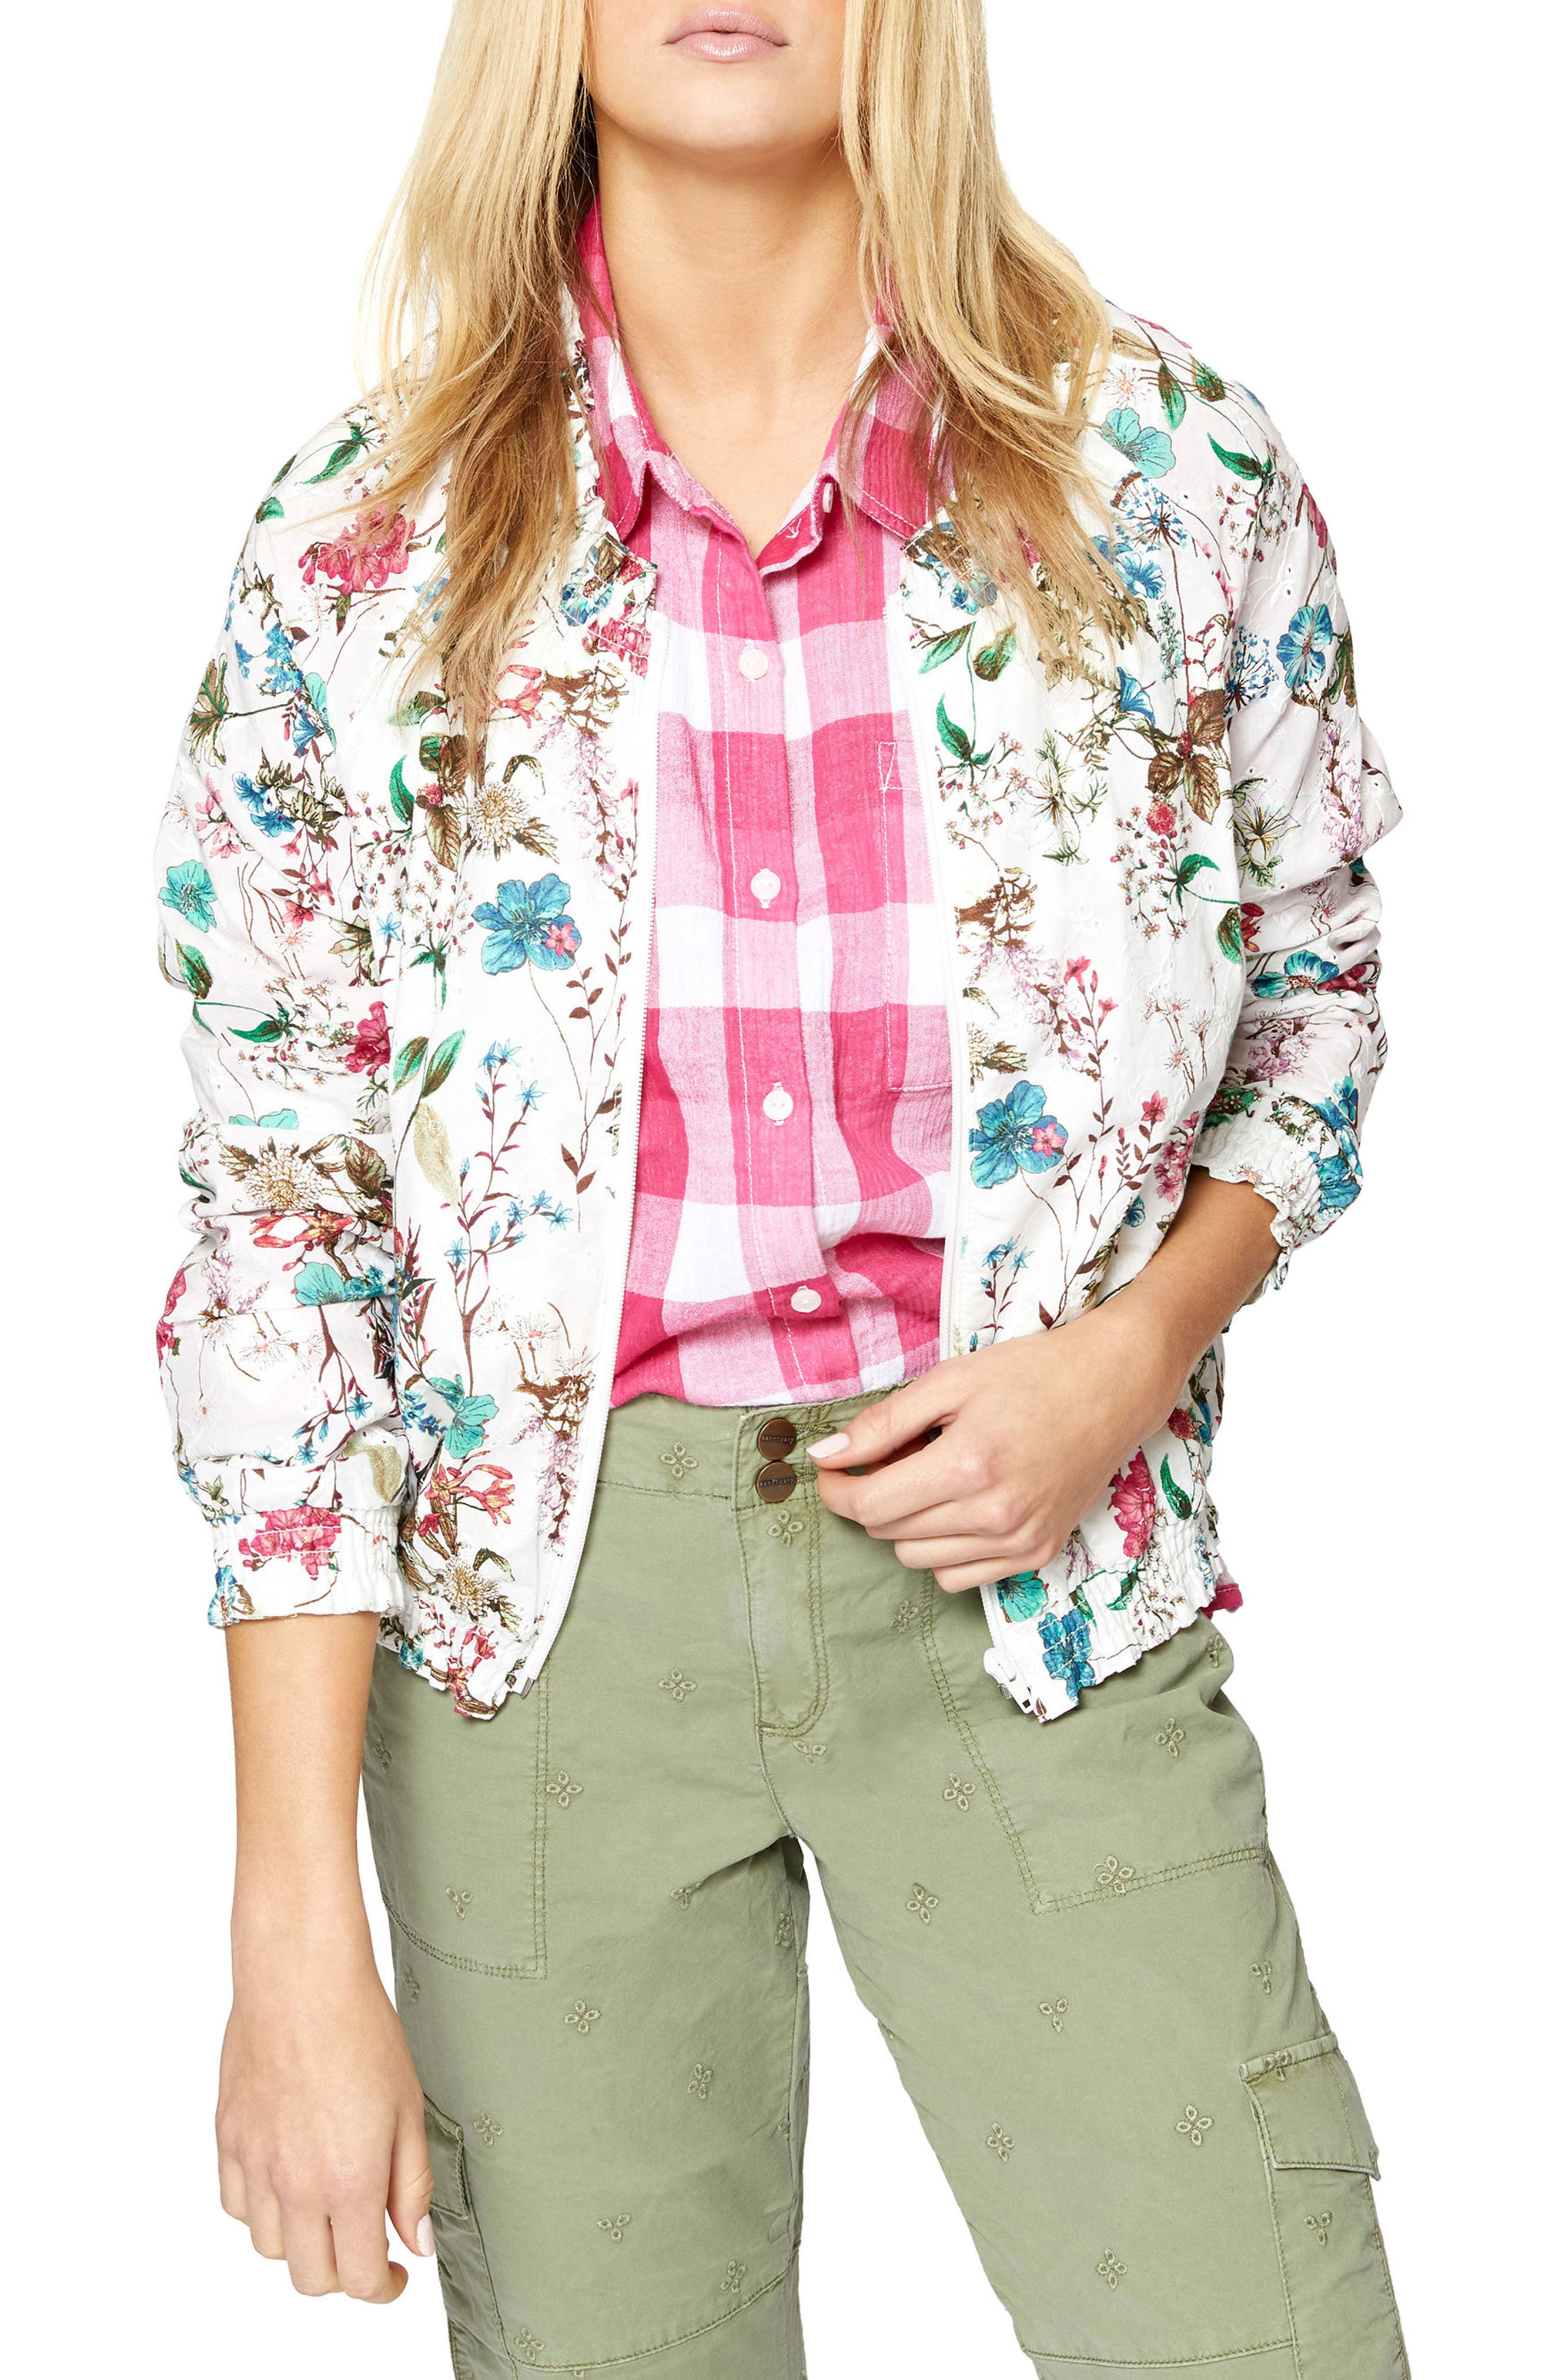 In Bloom Eyelet Bomber Jacket,                             Main thumbnail 1, color,                             CHEERFUL NATURE